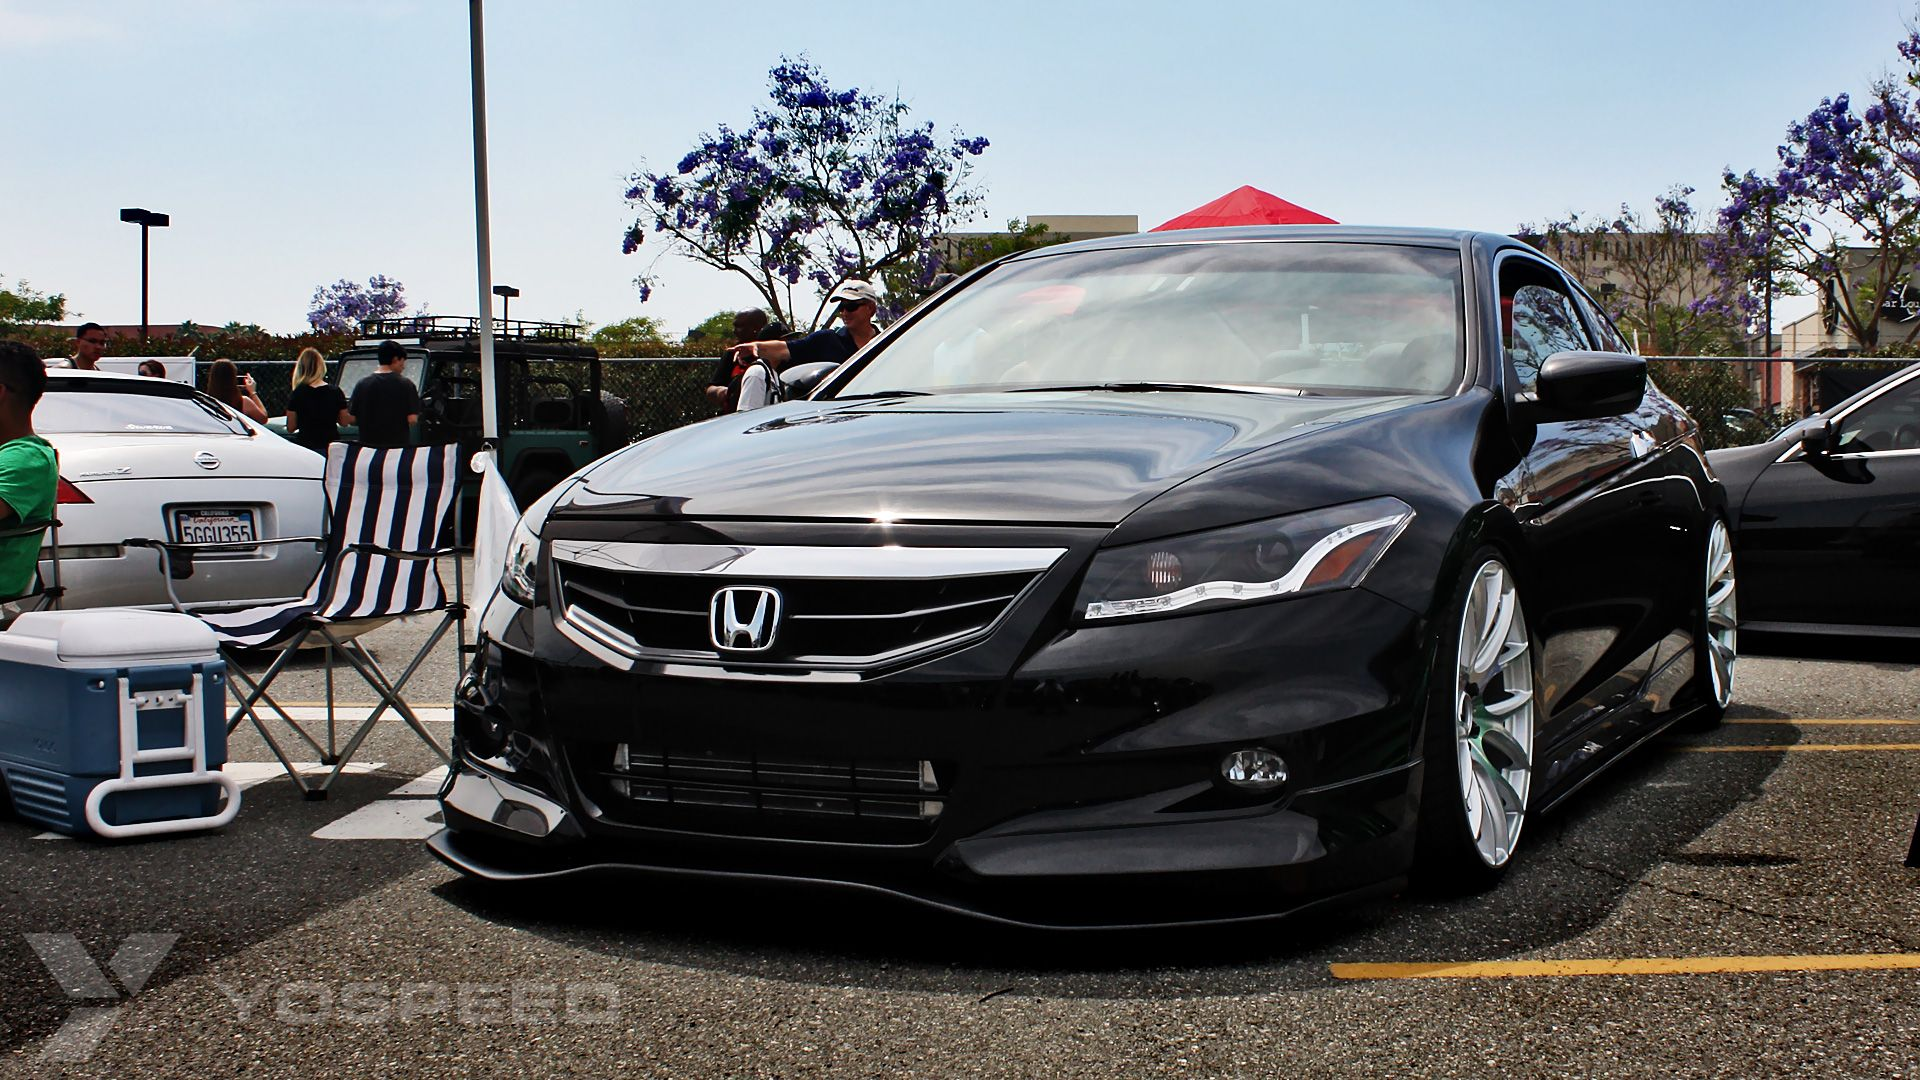 Http Yosd Wp Content Uploads 2017 07 8th Gen Accord Honda Jpg Mostly Accords Pinterest And Cars